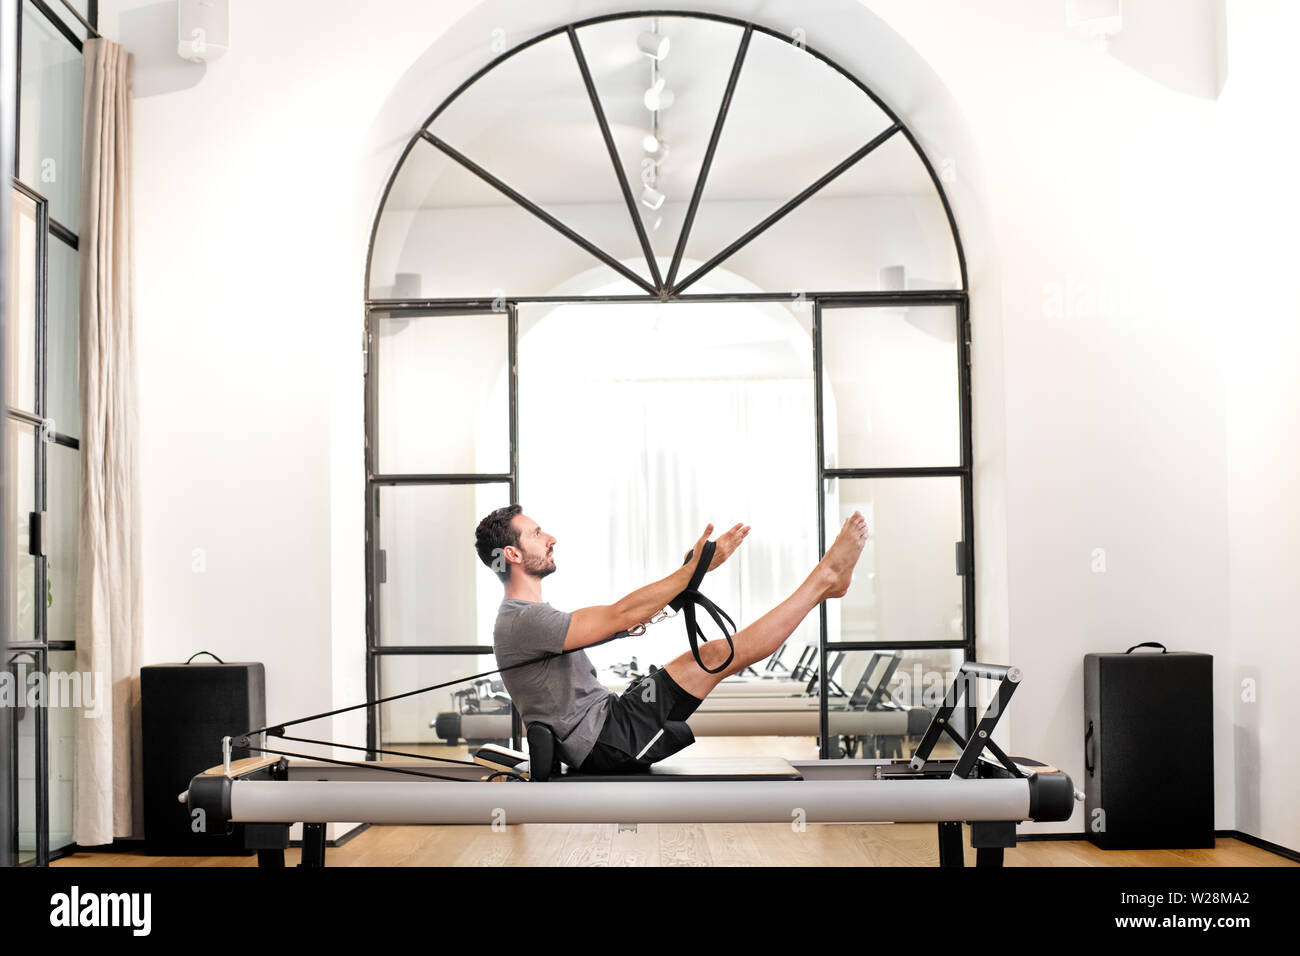 Man performing pilates teaser exercise on a reformer bed in a gym to strengthen the abdominal muscles and hip flexor in a health and fitness concept - Stock Image